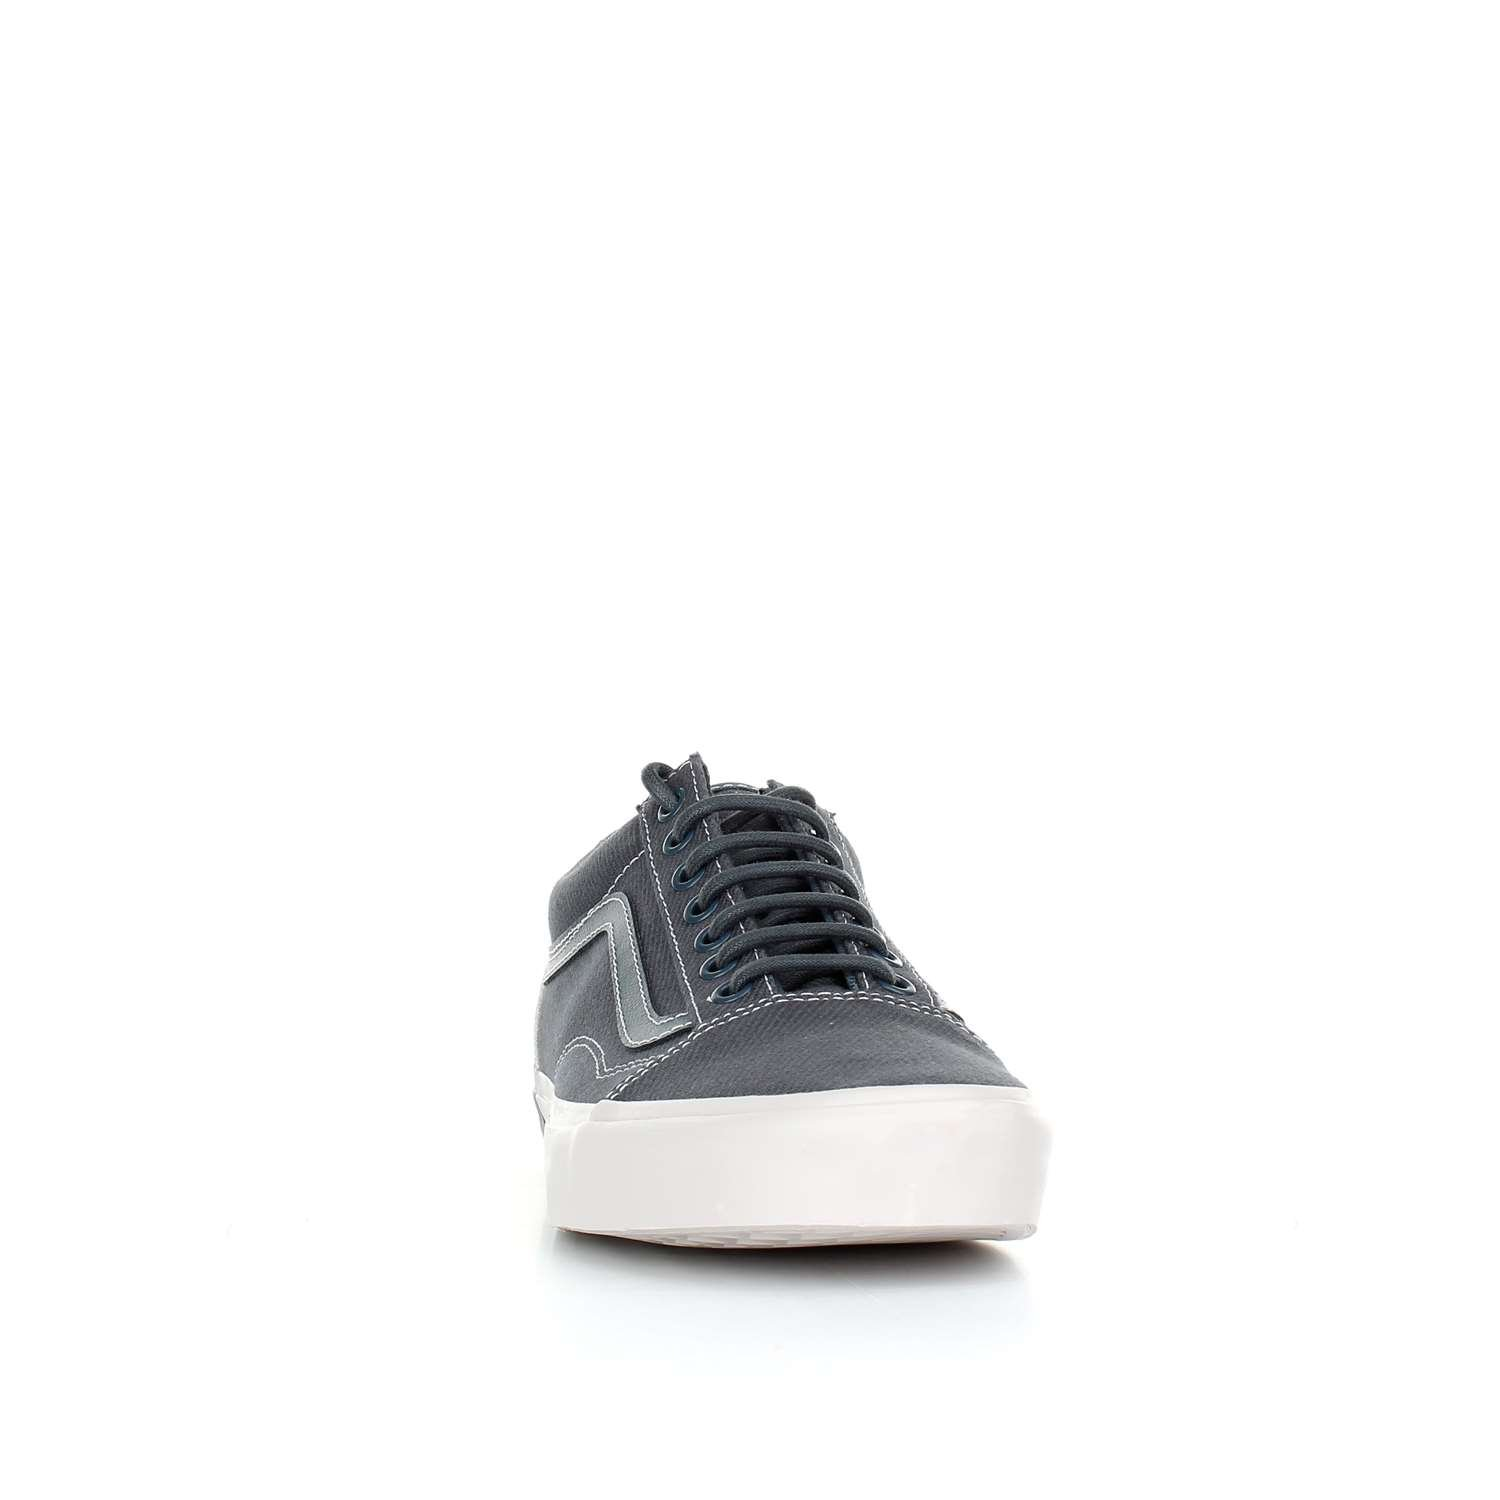 559784d9a2a Vans Unisex Old Skool Dx (Blocked) Dark Slate and Wind Chime Sneakers - 9  UK India (43 EU)  Buy Online at Low Prices in India - Amazon.in